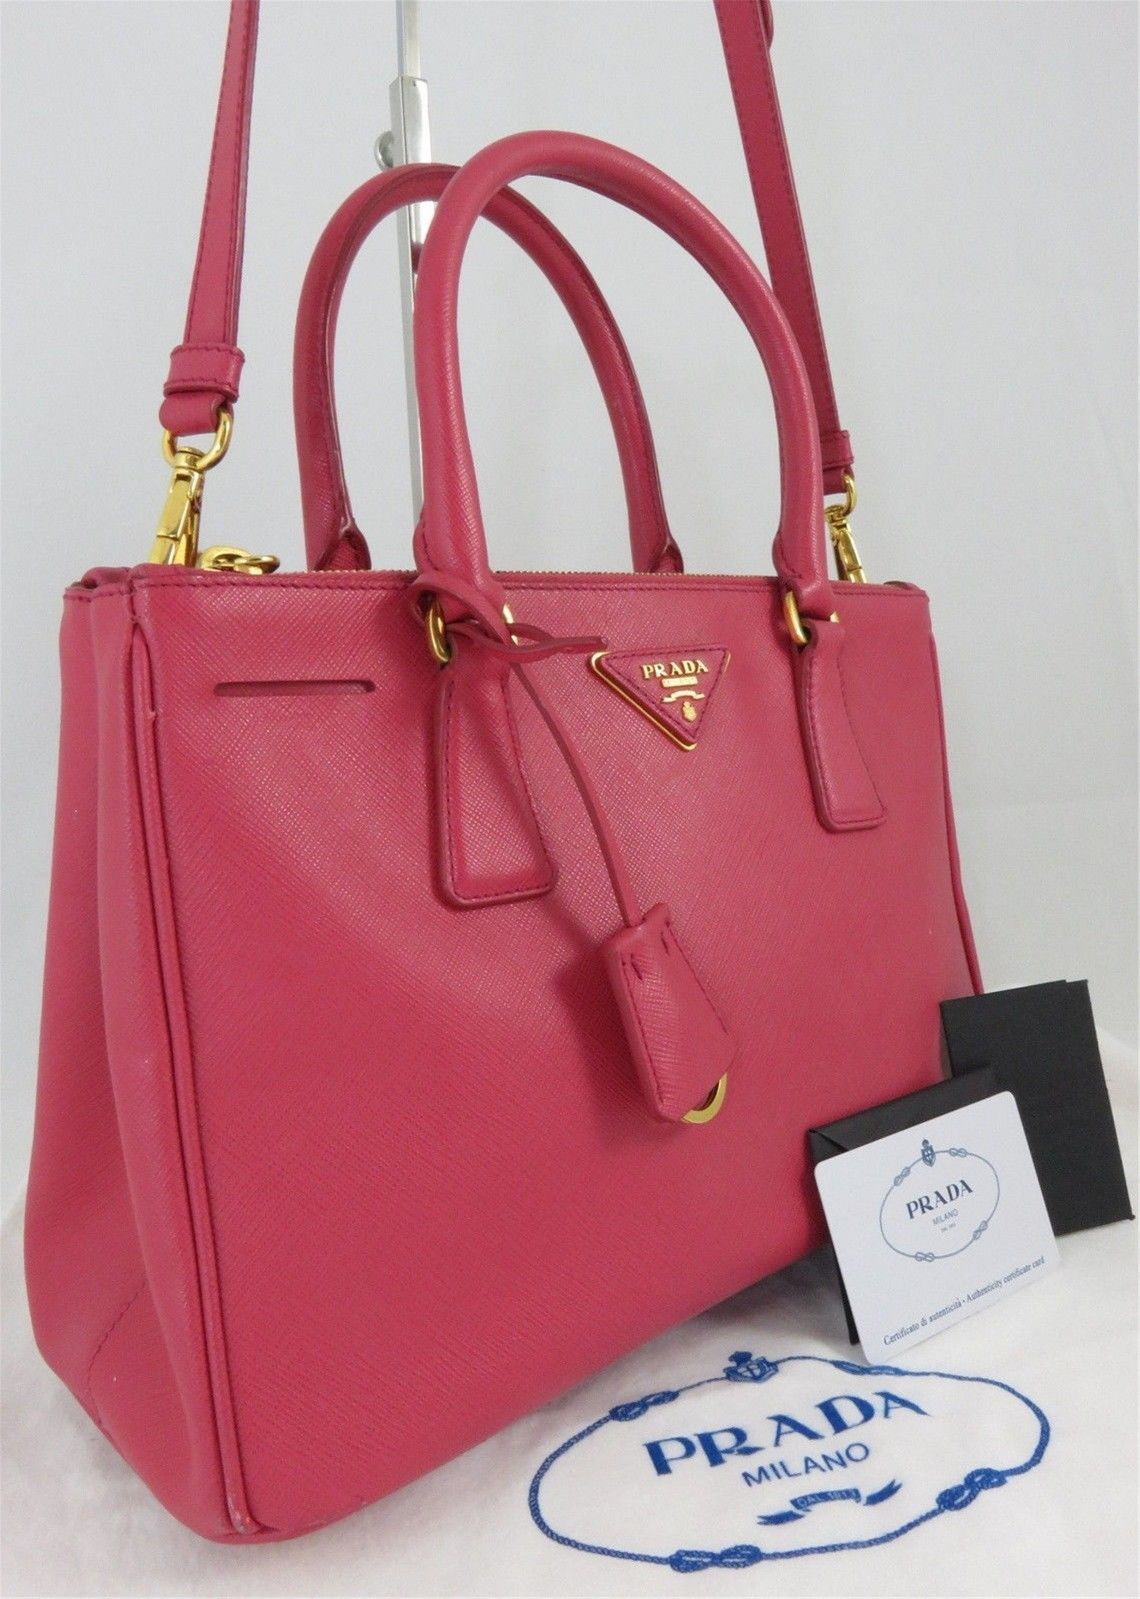 5bf8e231e4c2 Authentic PRADA Saffiano Pink Fuxia Leather Shoulder Bag Handbag ...